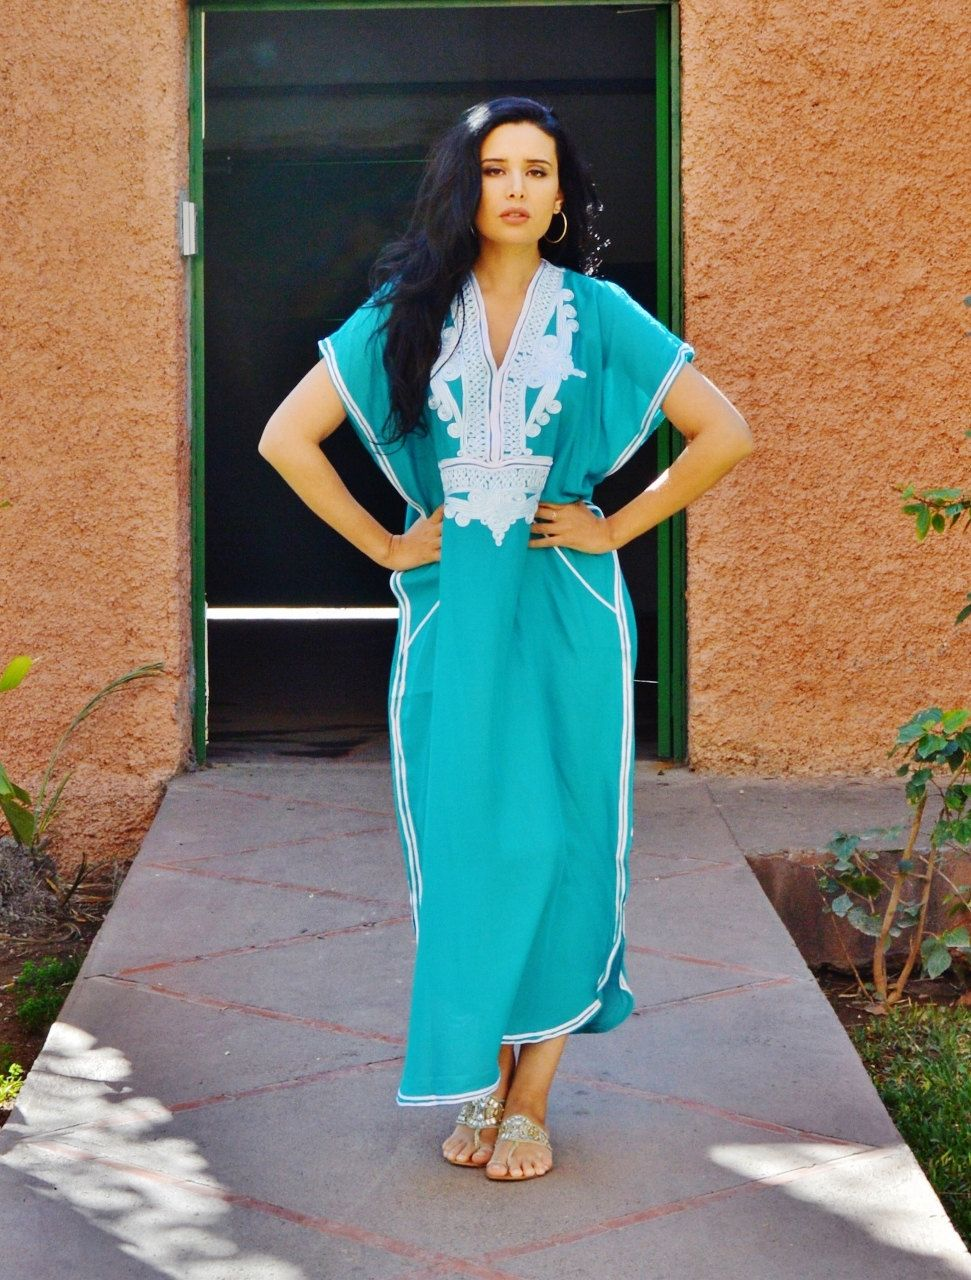 6cec3aee40 Emerald Gren Resortwear Caftan Kaftan-for Ramadan, beach cover up,  resortwear,abaya, lounge wear, maternity wear, birthday, wedding gifts by  MaisonMarrakech ...